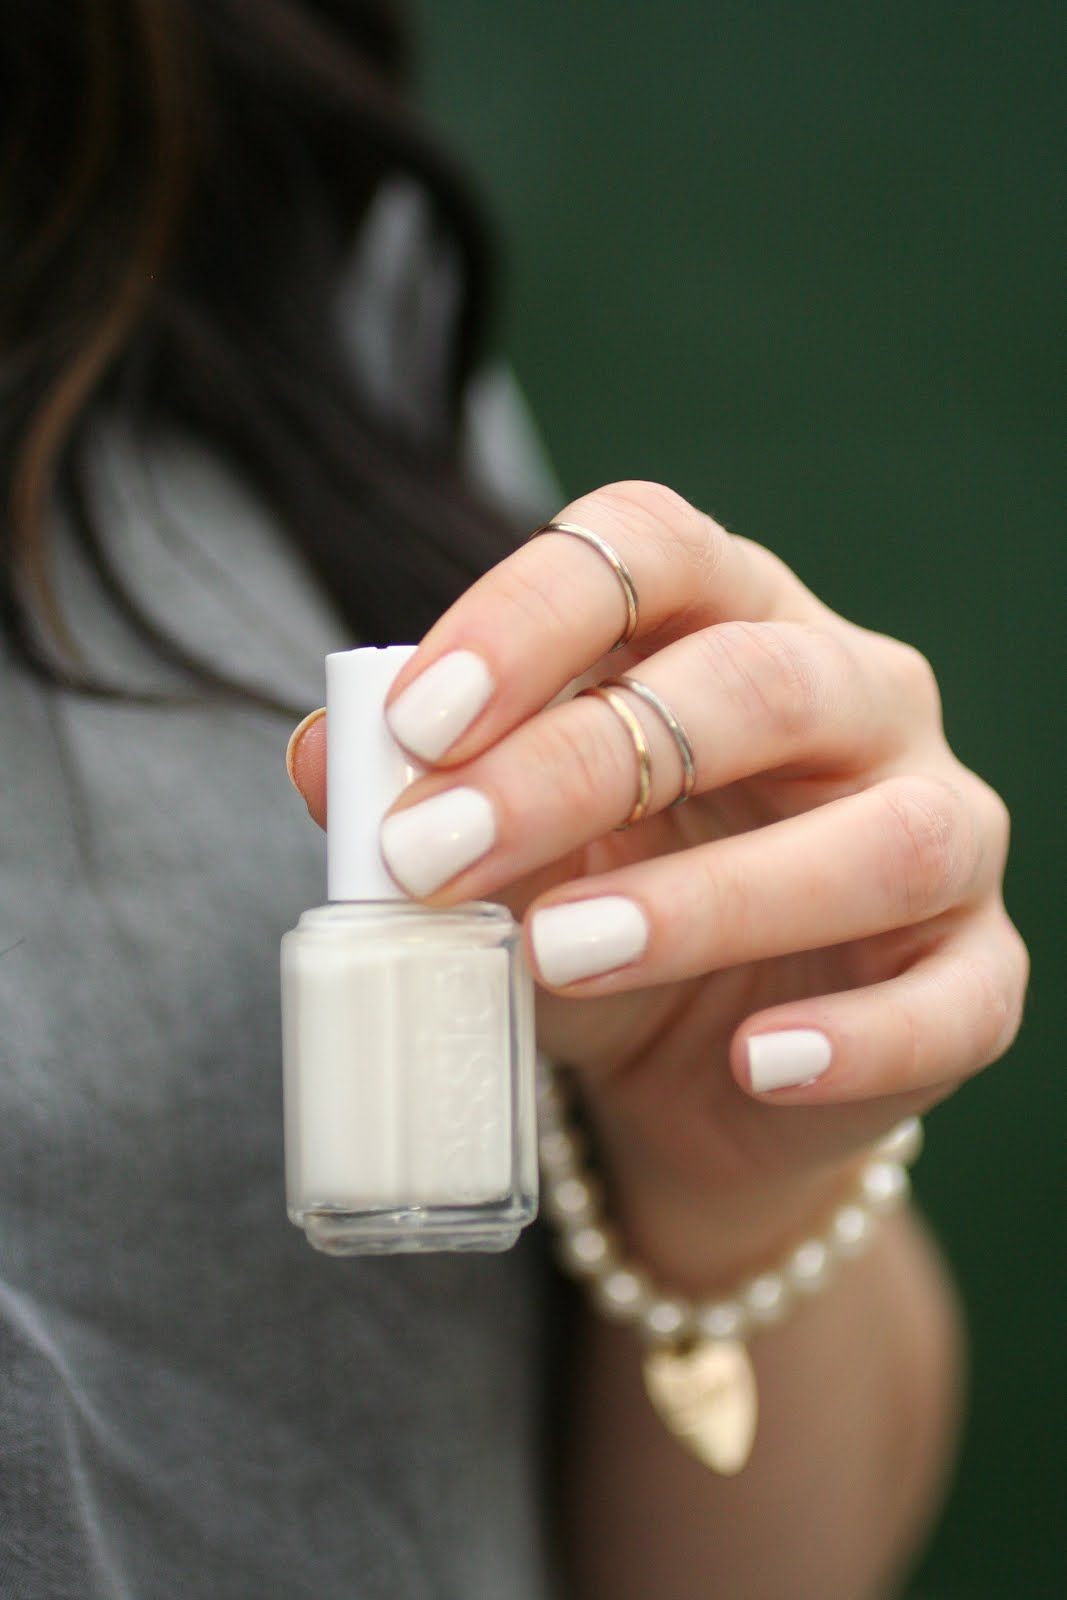 Pin by Alma Lopez on white or almost white | Pinterest | Essie ...